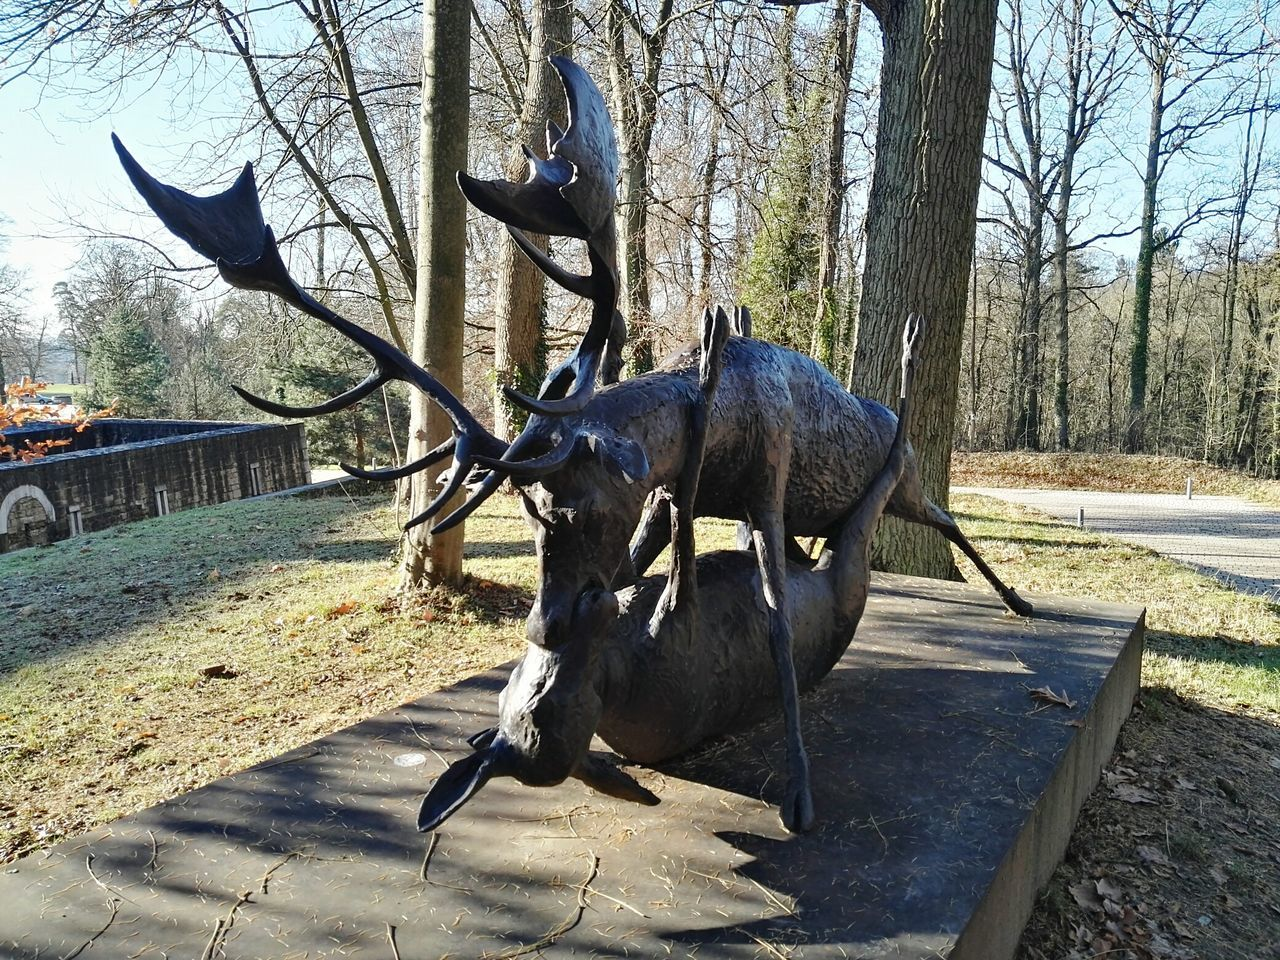 Capture Luxembourg Tree Animal Themes One Animal Outdoors Mammal Day Sunlight No People Domestic Animals Nature Sky Luxembourg Streetphotography Luxembourg Garden Luxembourg_Collection Deer ♥♥ Deer Moments Statue Statues Mudam Original Artwork First Thing I Saw In Luxembourg Pure Love